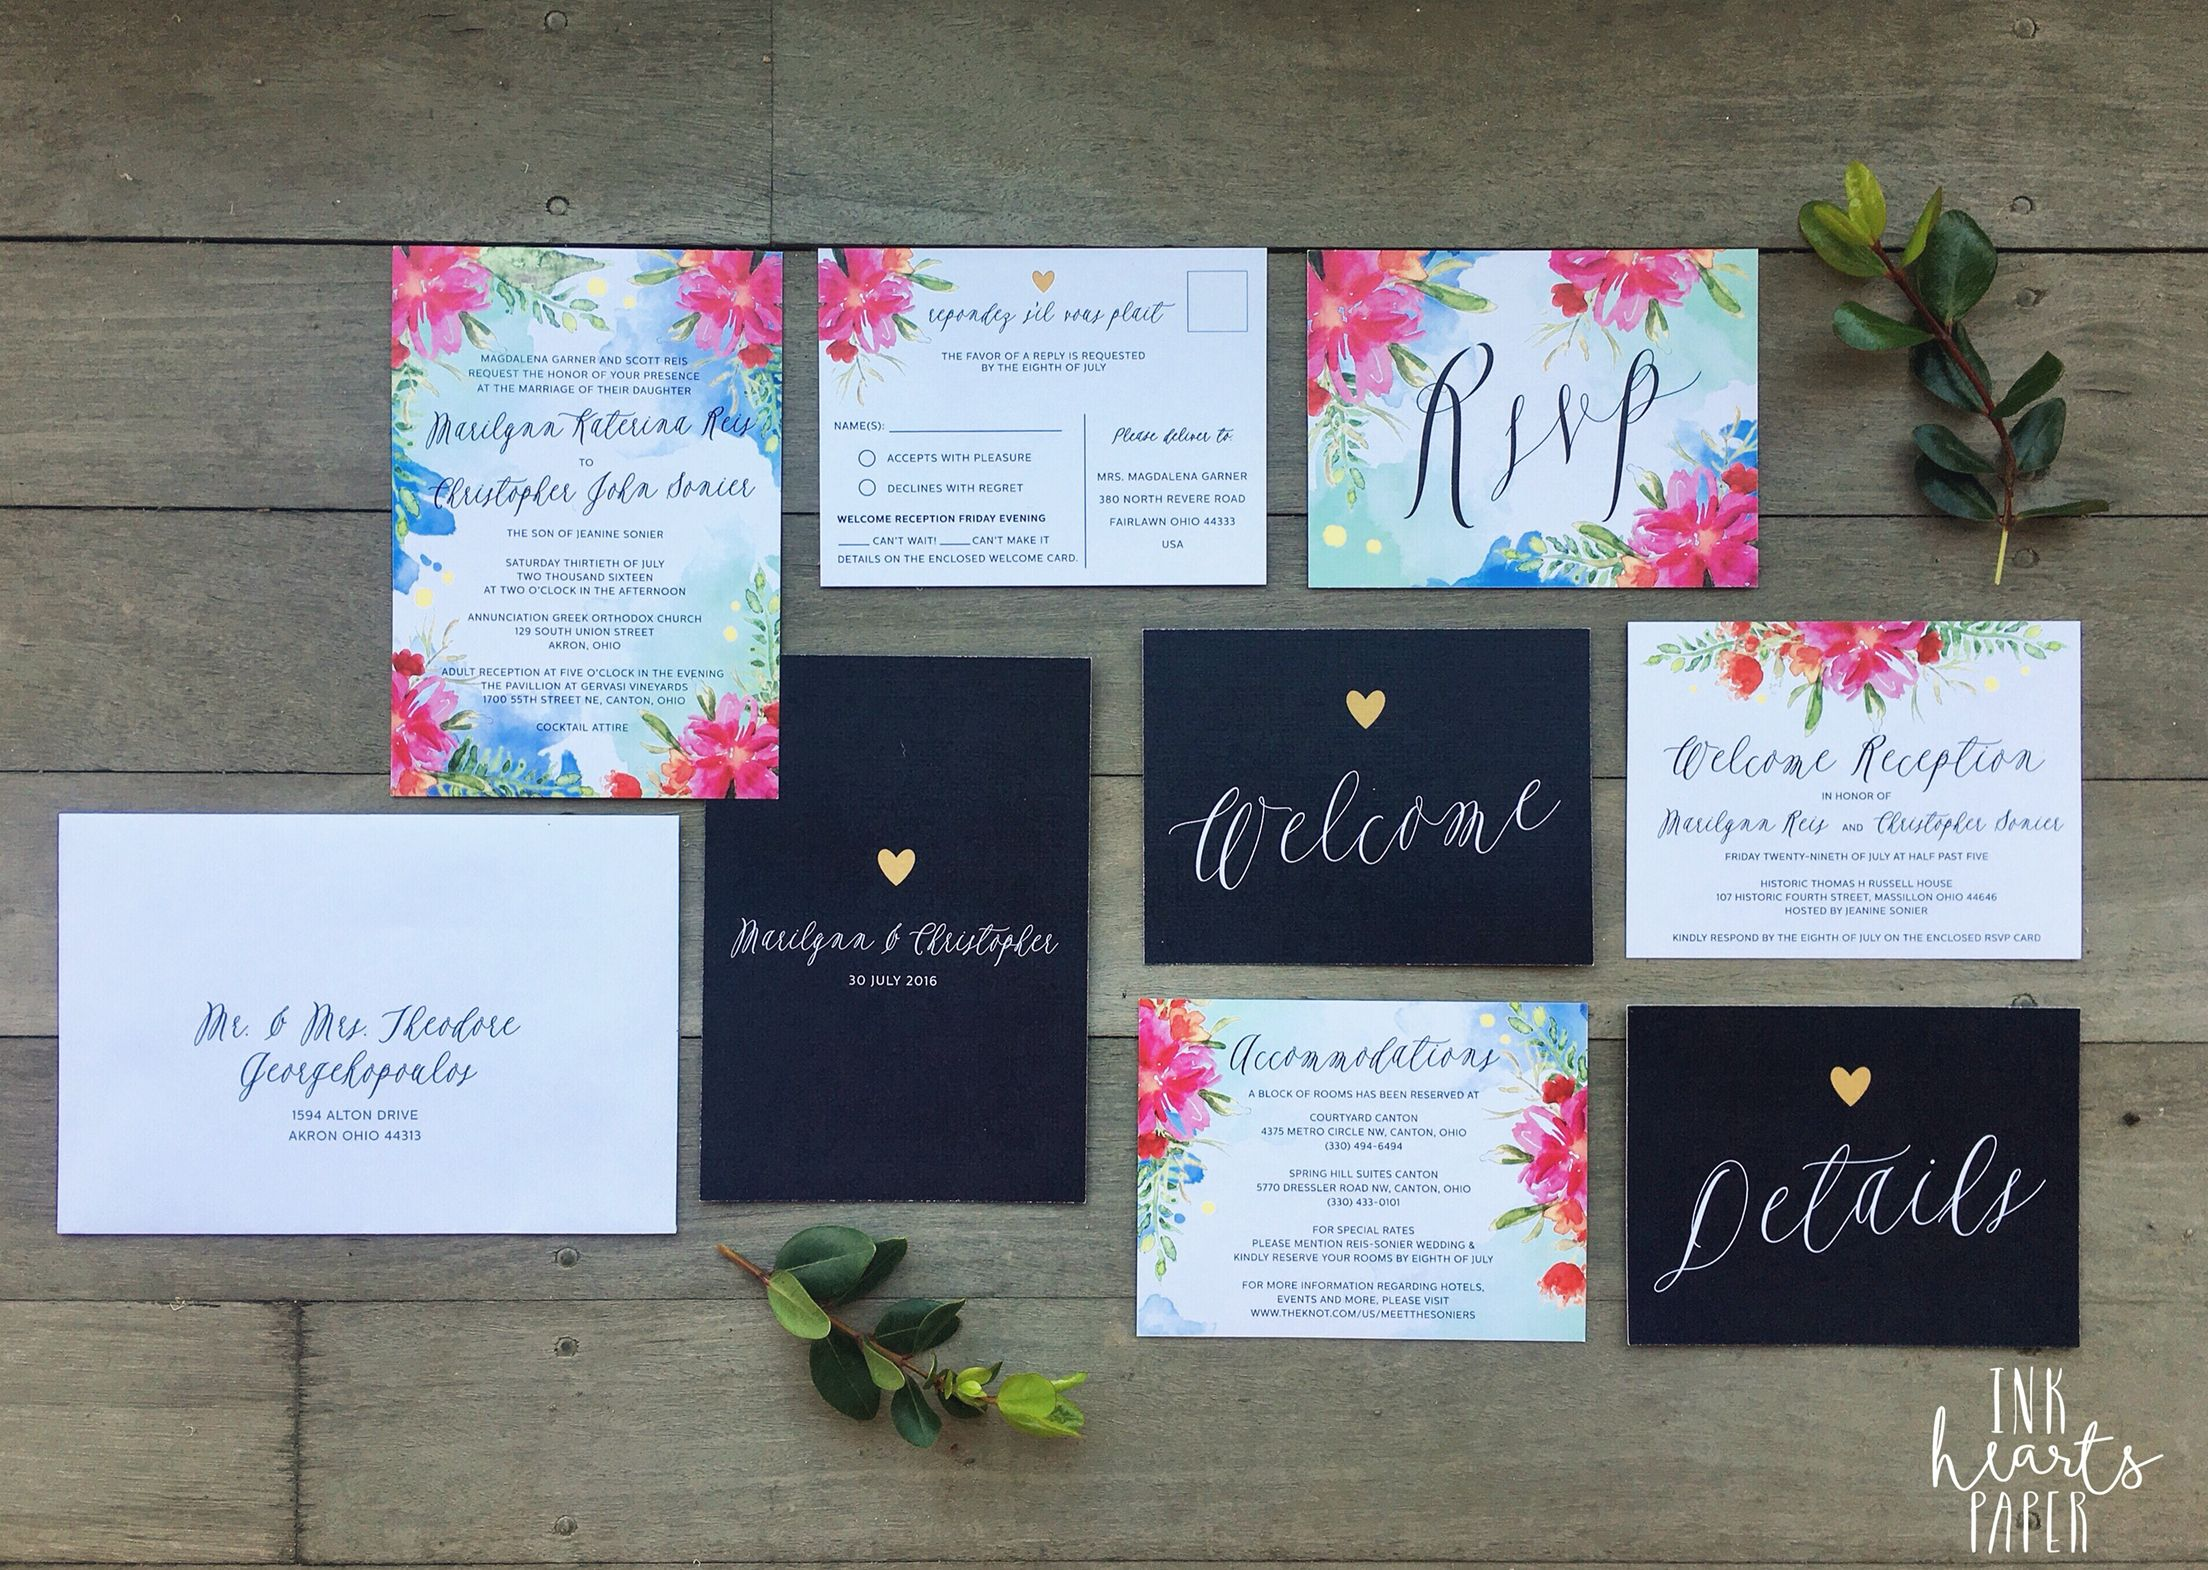 how to address wedding invites%0A Wedding engagement invitation stationery simple modern classy professional  calligraphy bright floral watercolor watercolour tropical island Hawaii